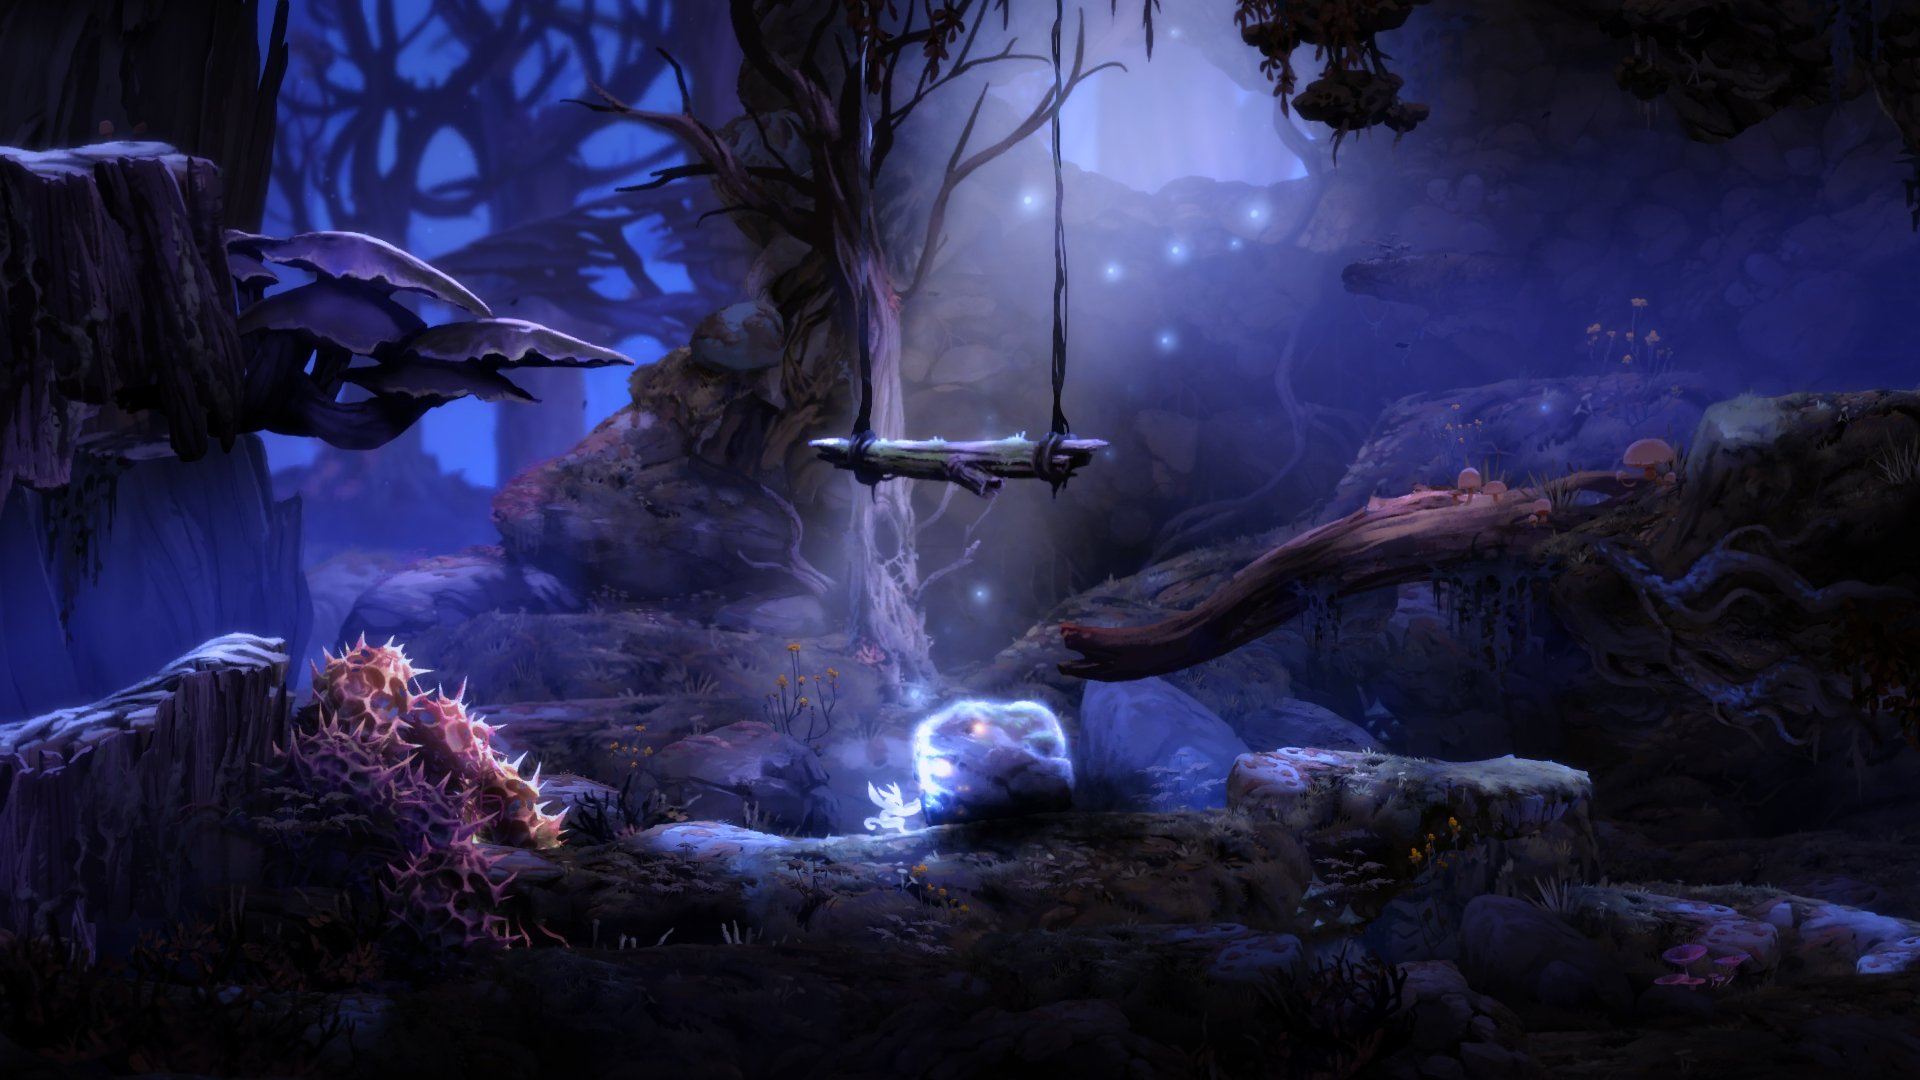 Ori Character Ori And The Blind Forest Hd Wallpaper 2180422